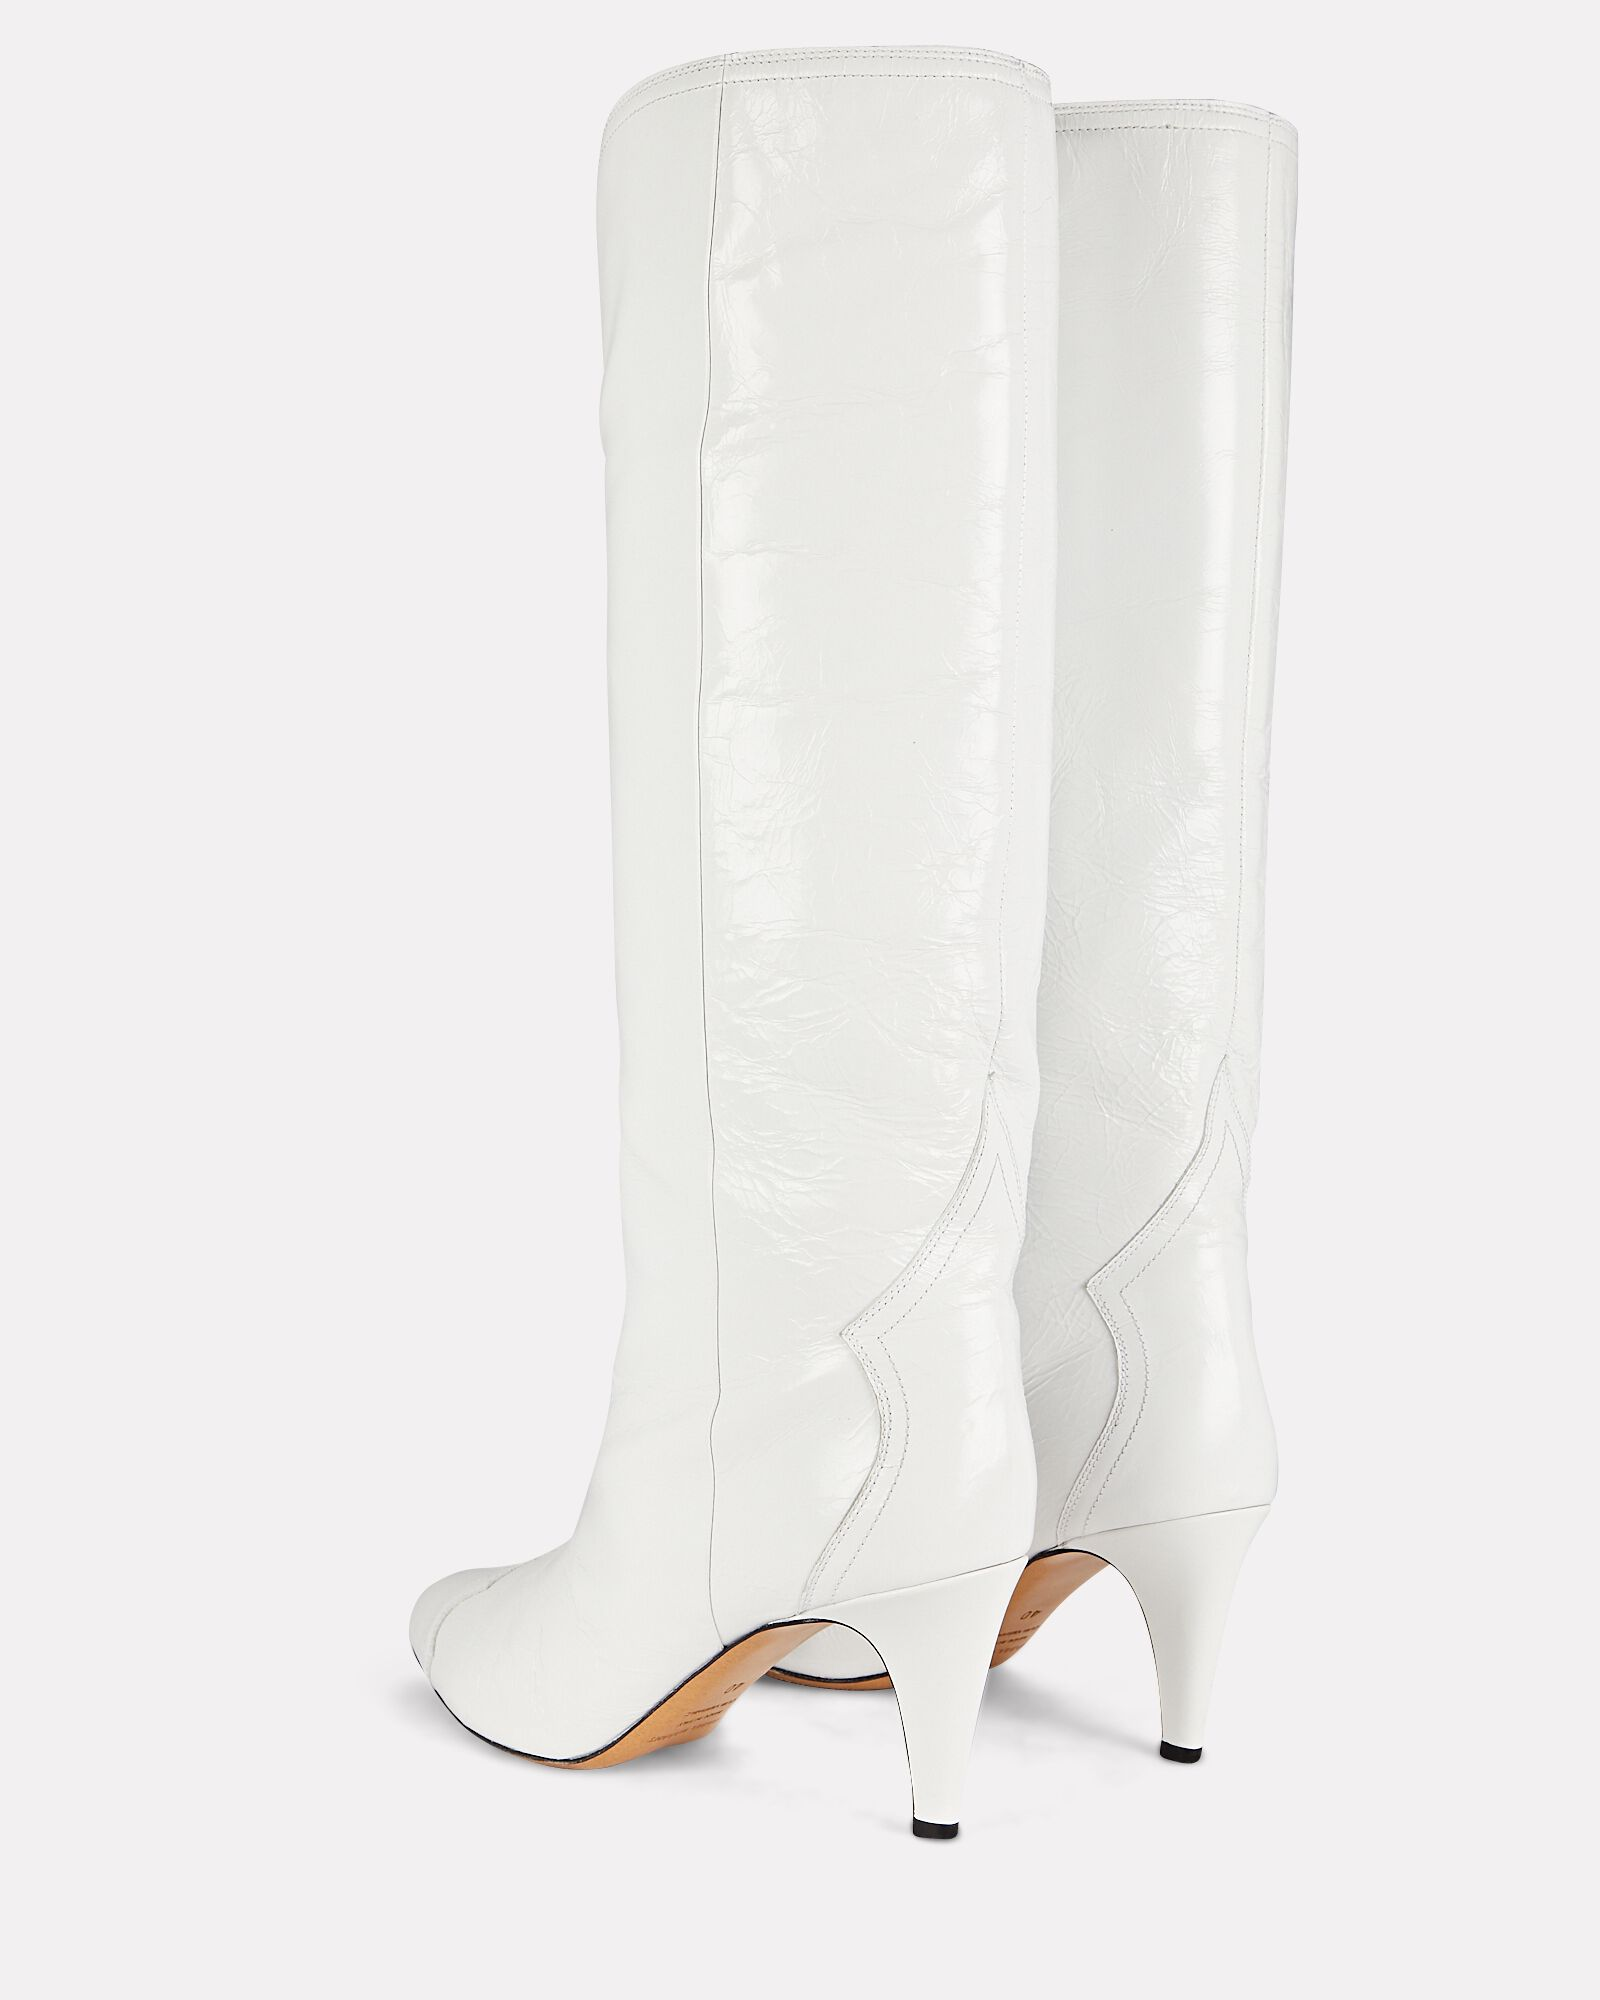 Lyestany Tall Leather Boots, WHITE, hi-res